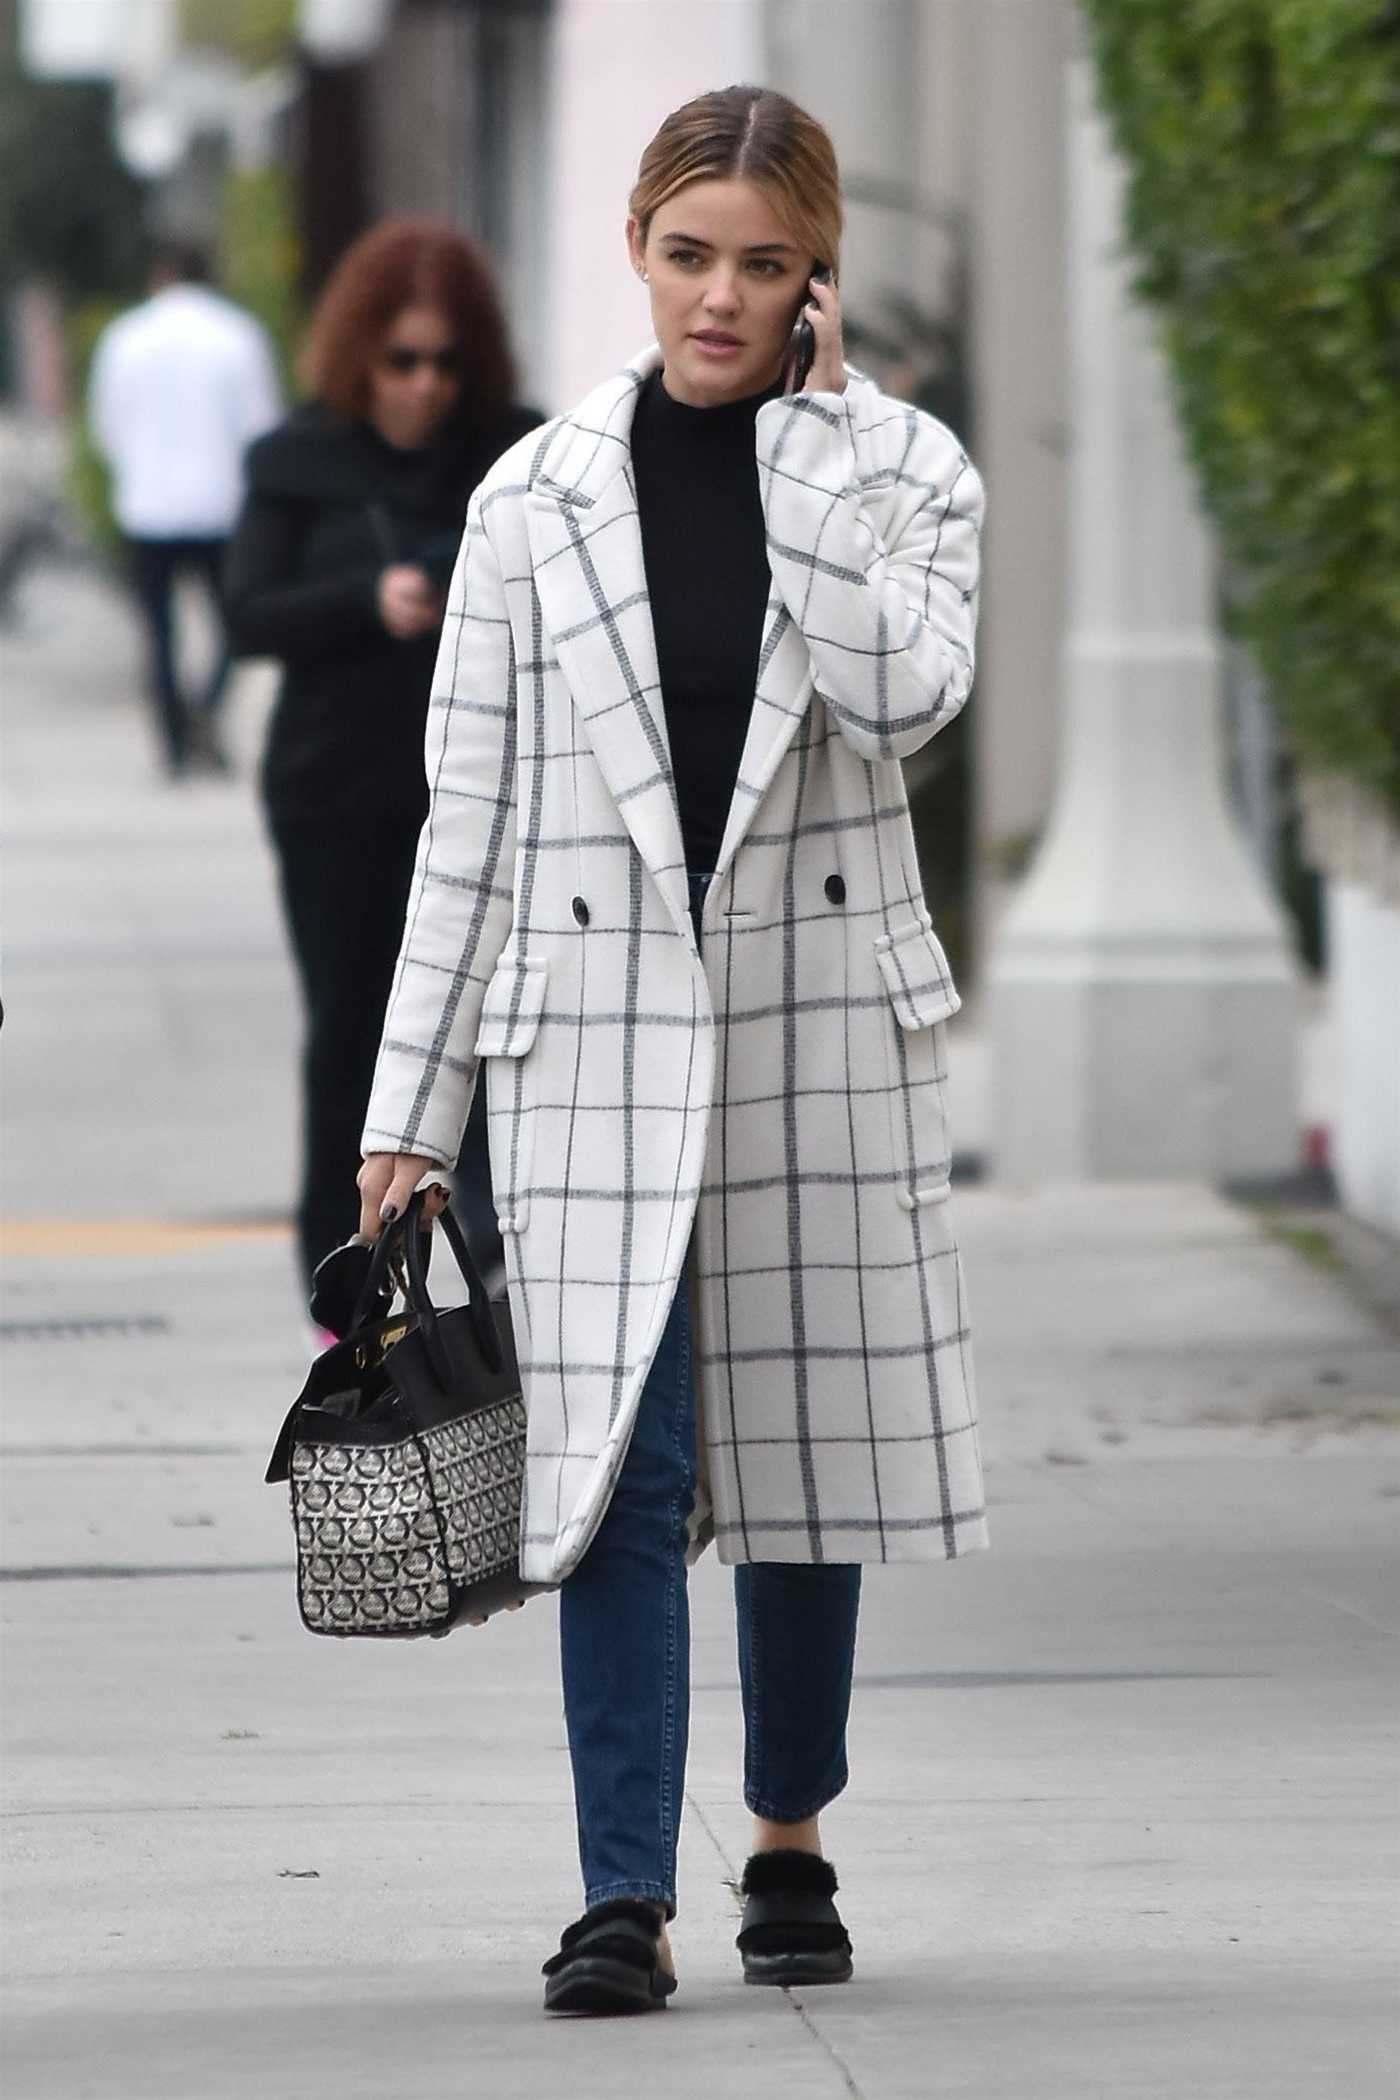 Lucy Hale in a White Plaid Coat Was Seen Out in Studio City 02/20/2019